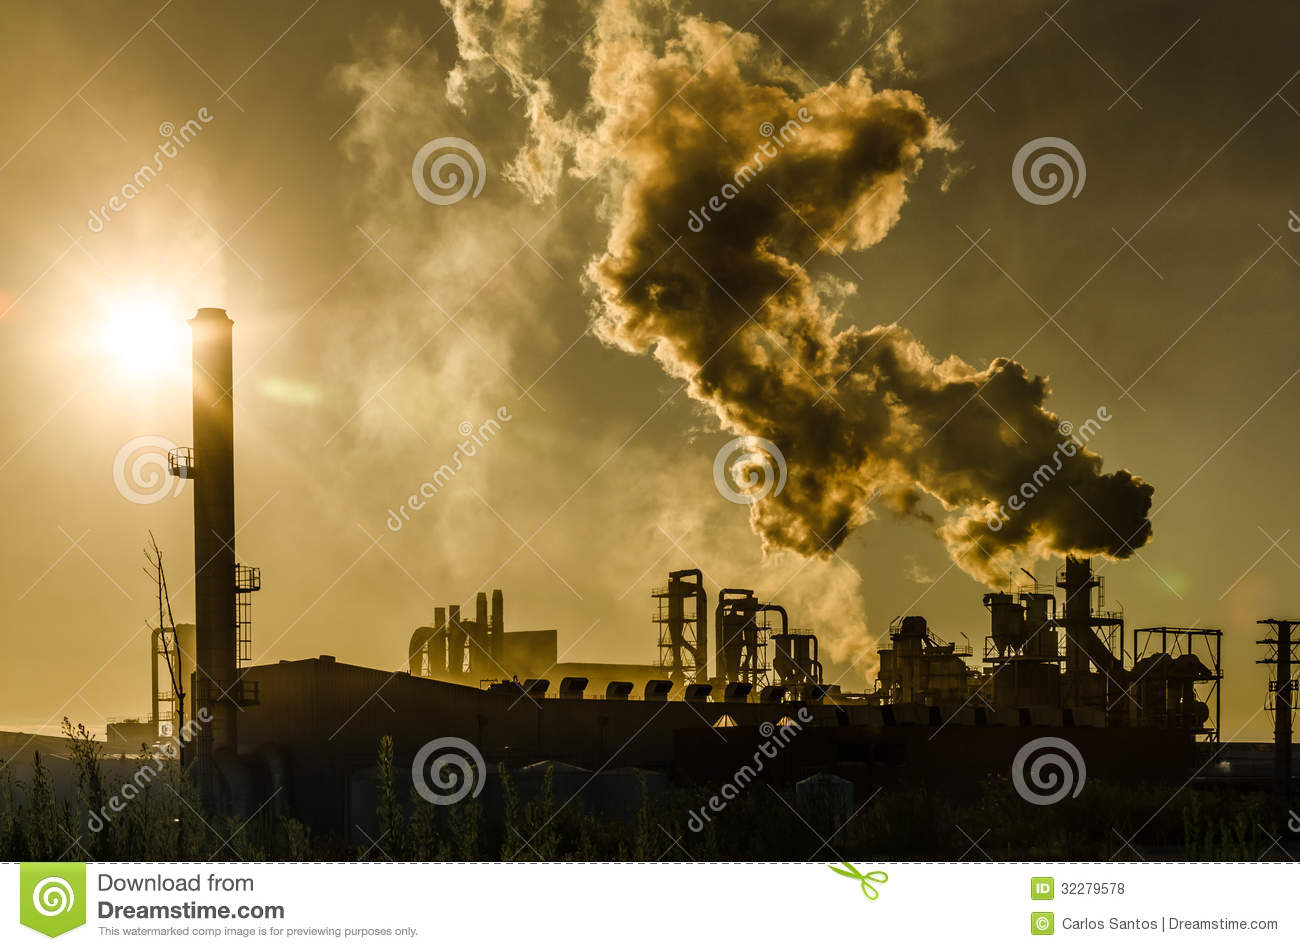 Air pollution coming from factory